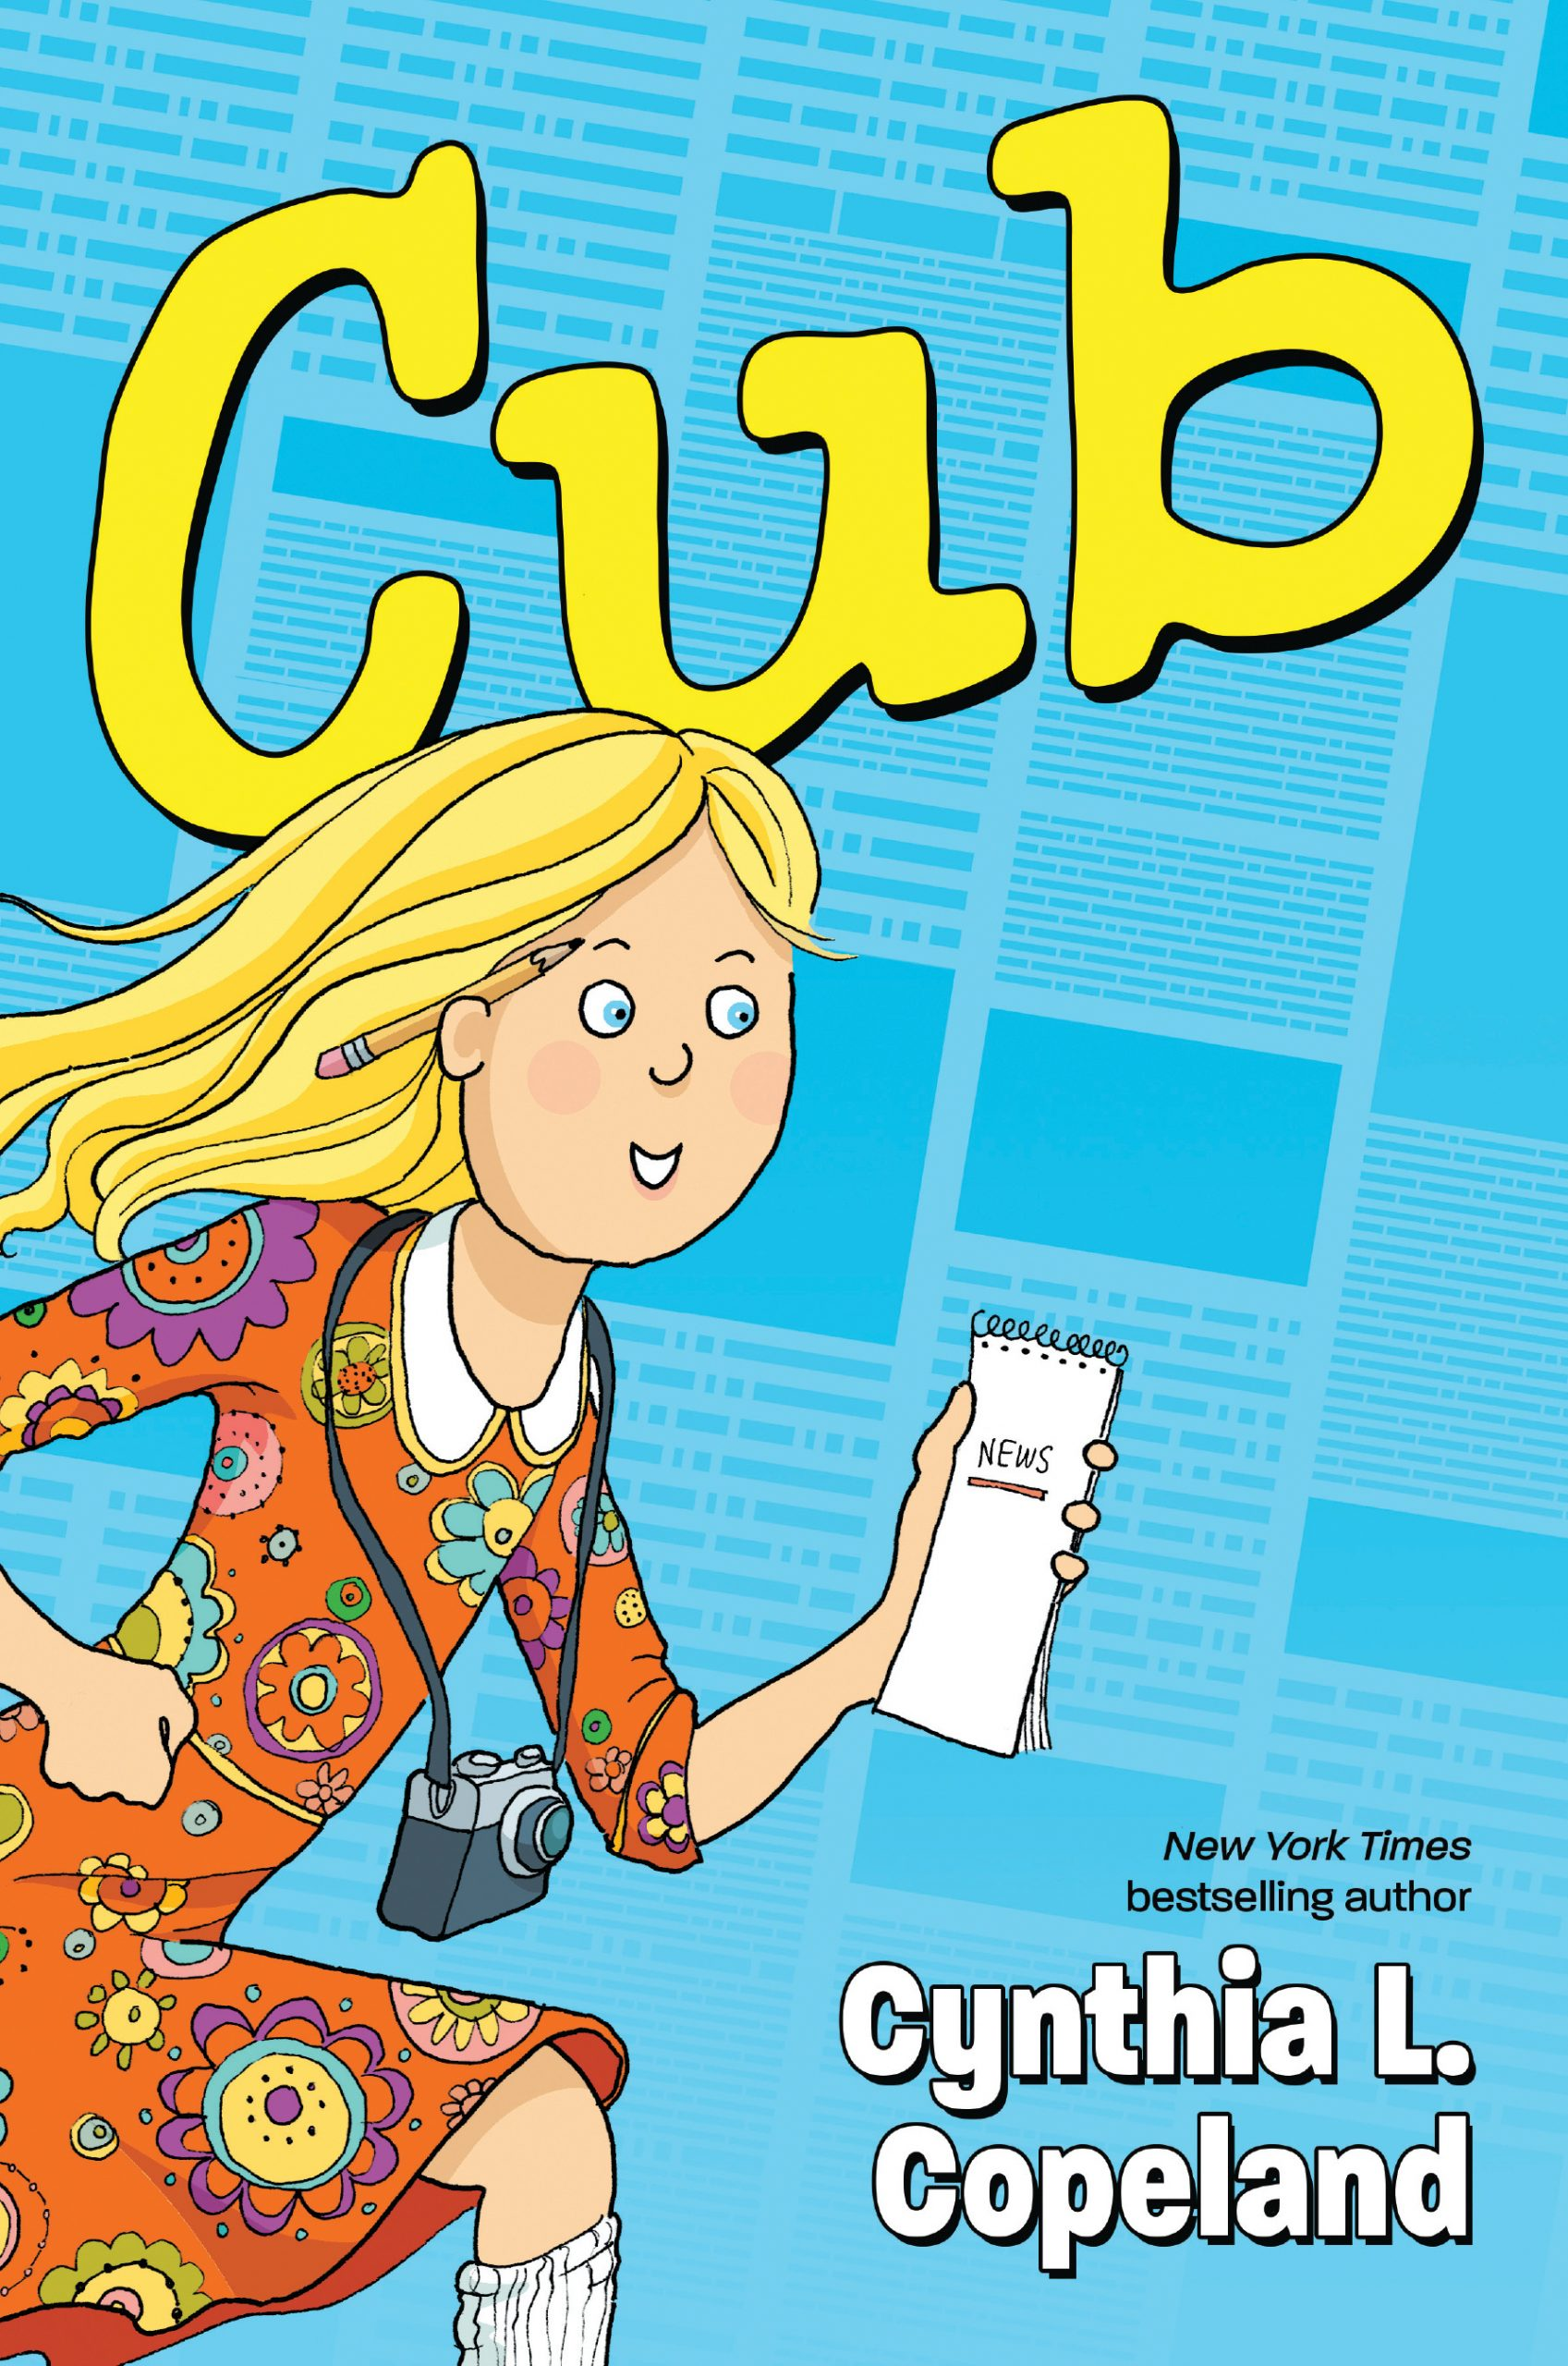 CUB ~ Cynthia L. Copeland Shares Her New Graphic Memoir & Enter A Giveaway!